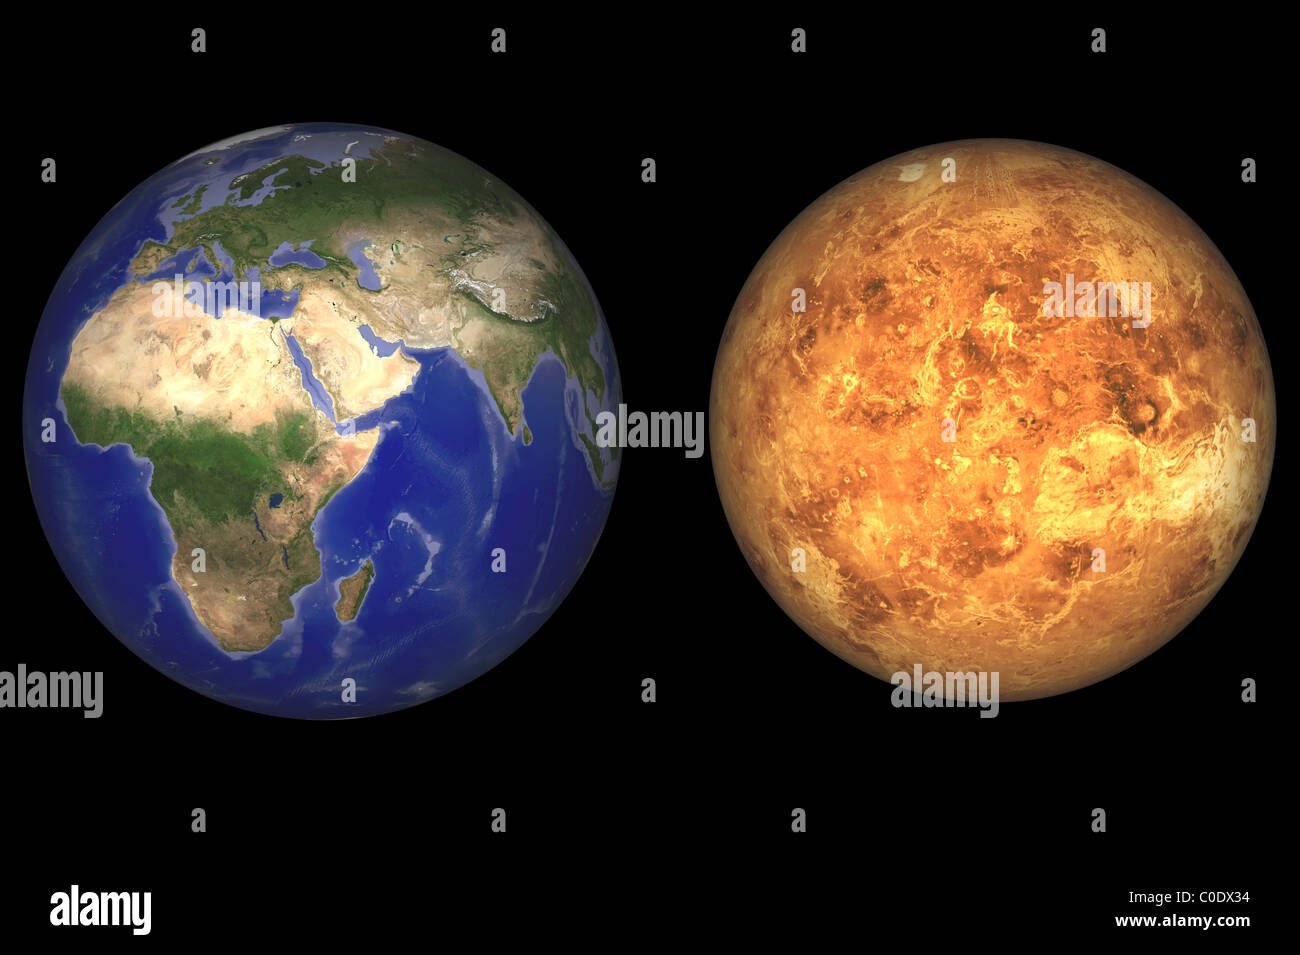 Solar System Map Stock Photos & Solar System Map Stock ...